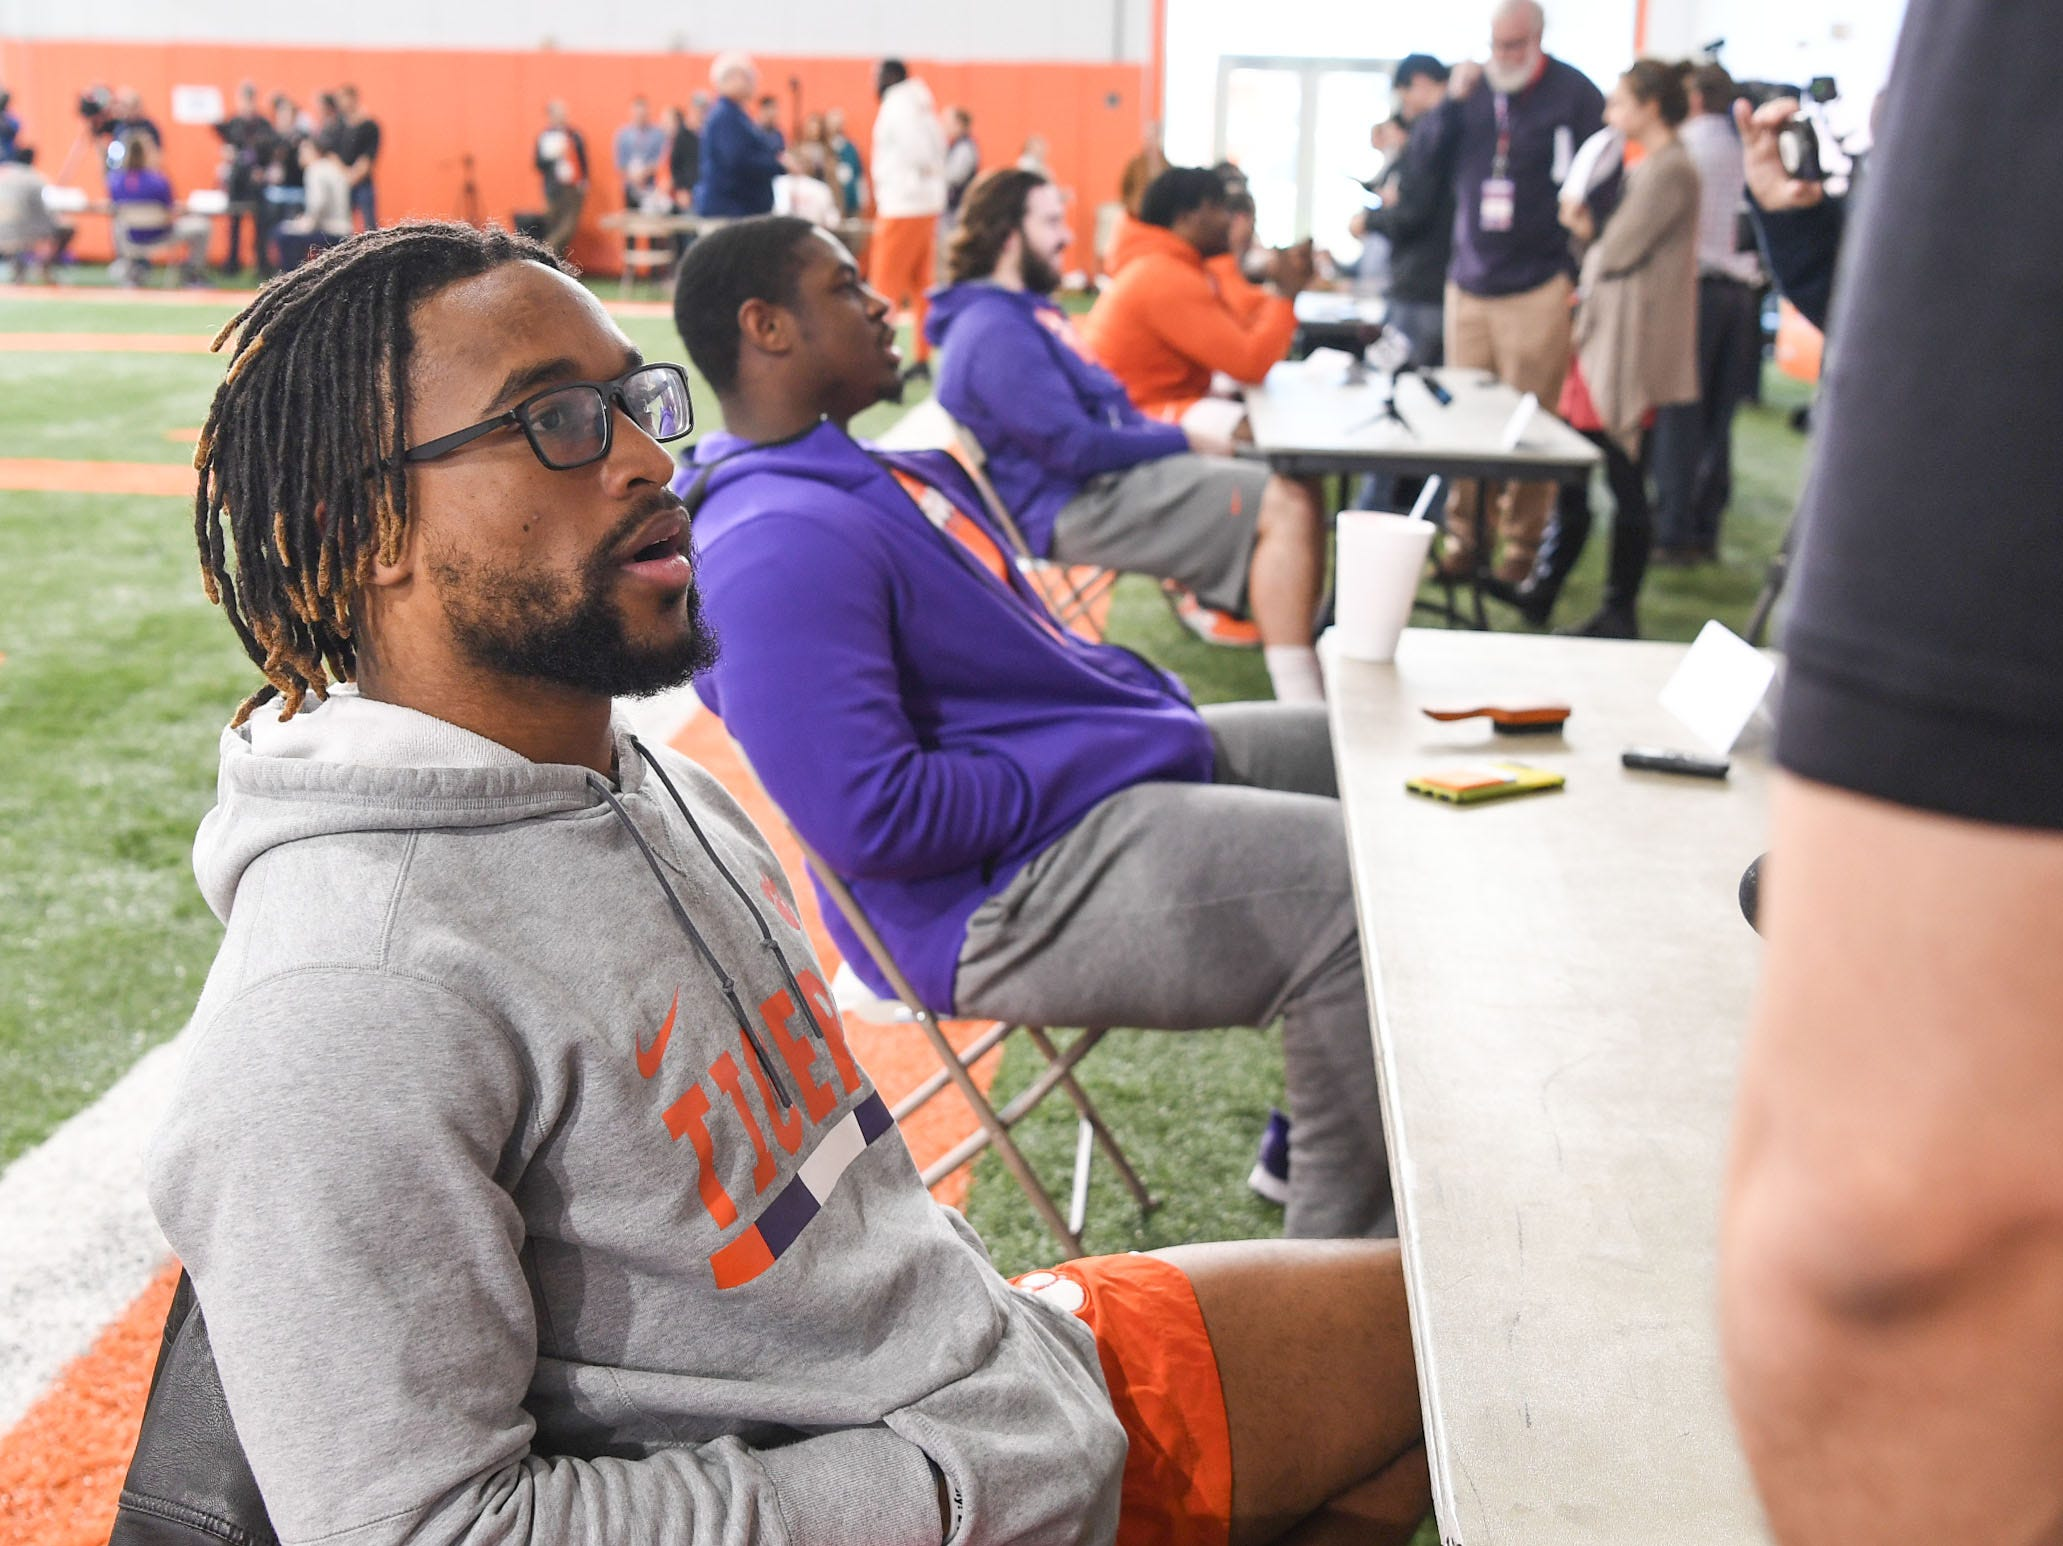 Clemson wide receiver Amari Rodgers is interviewed during Media Day at the Poe Indoor Facility in Clemson on Tuesday.